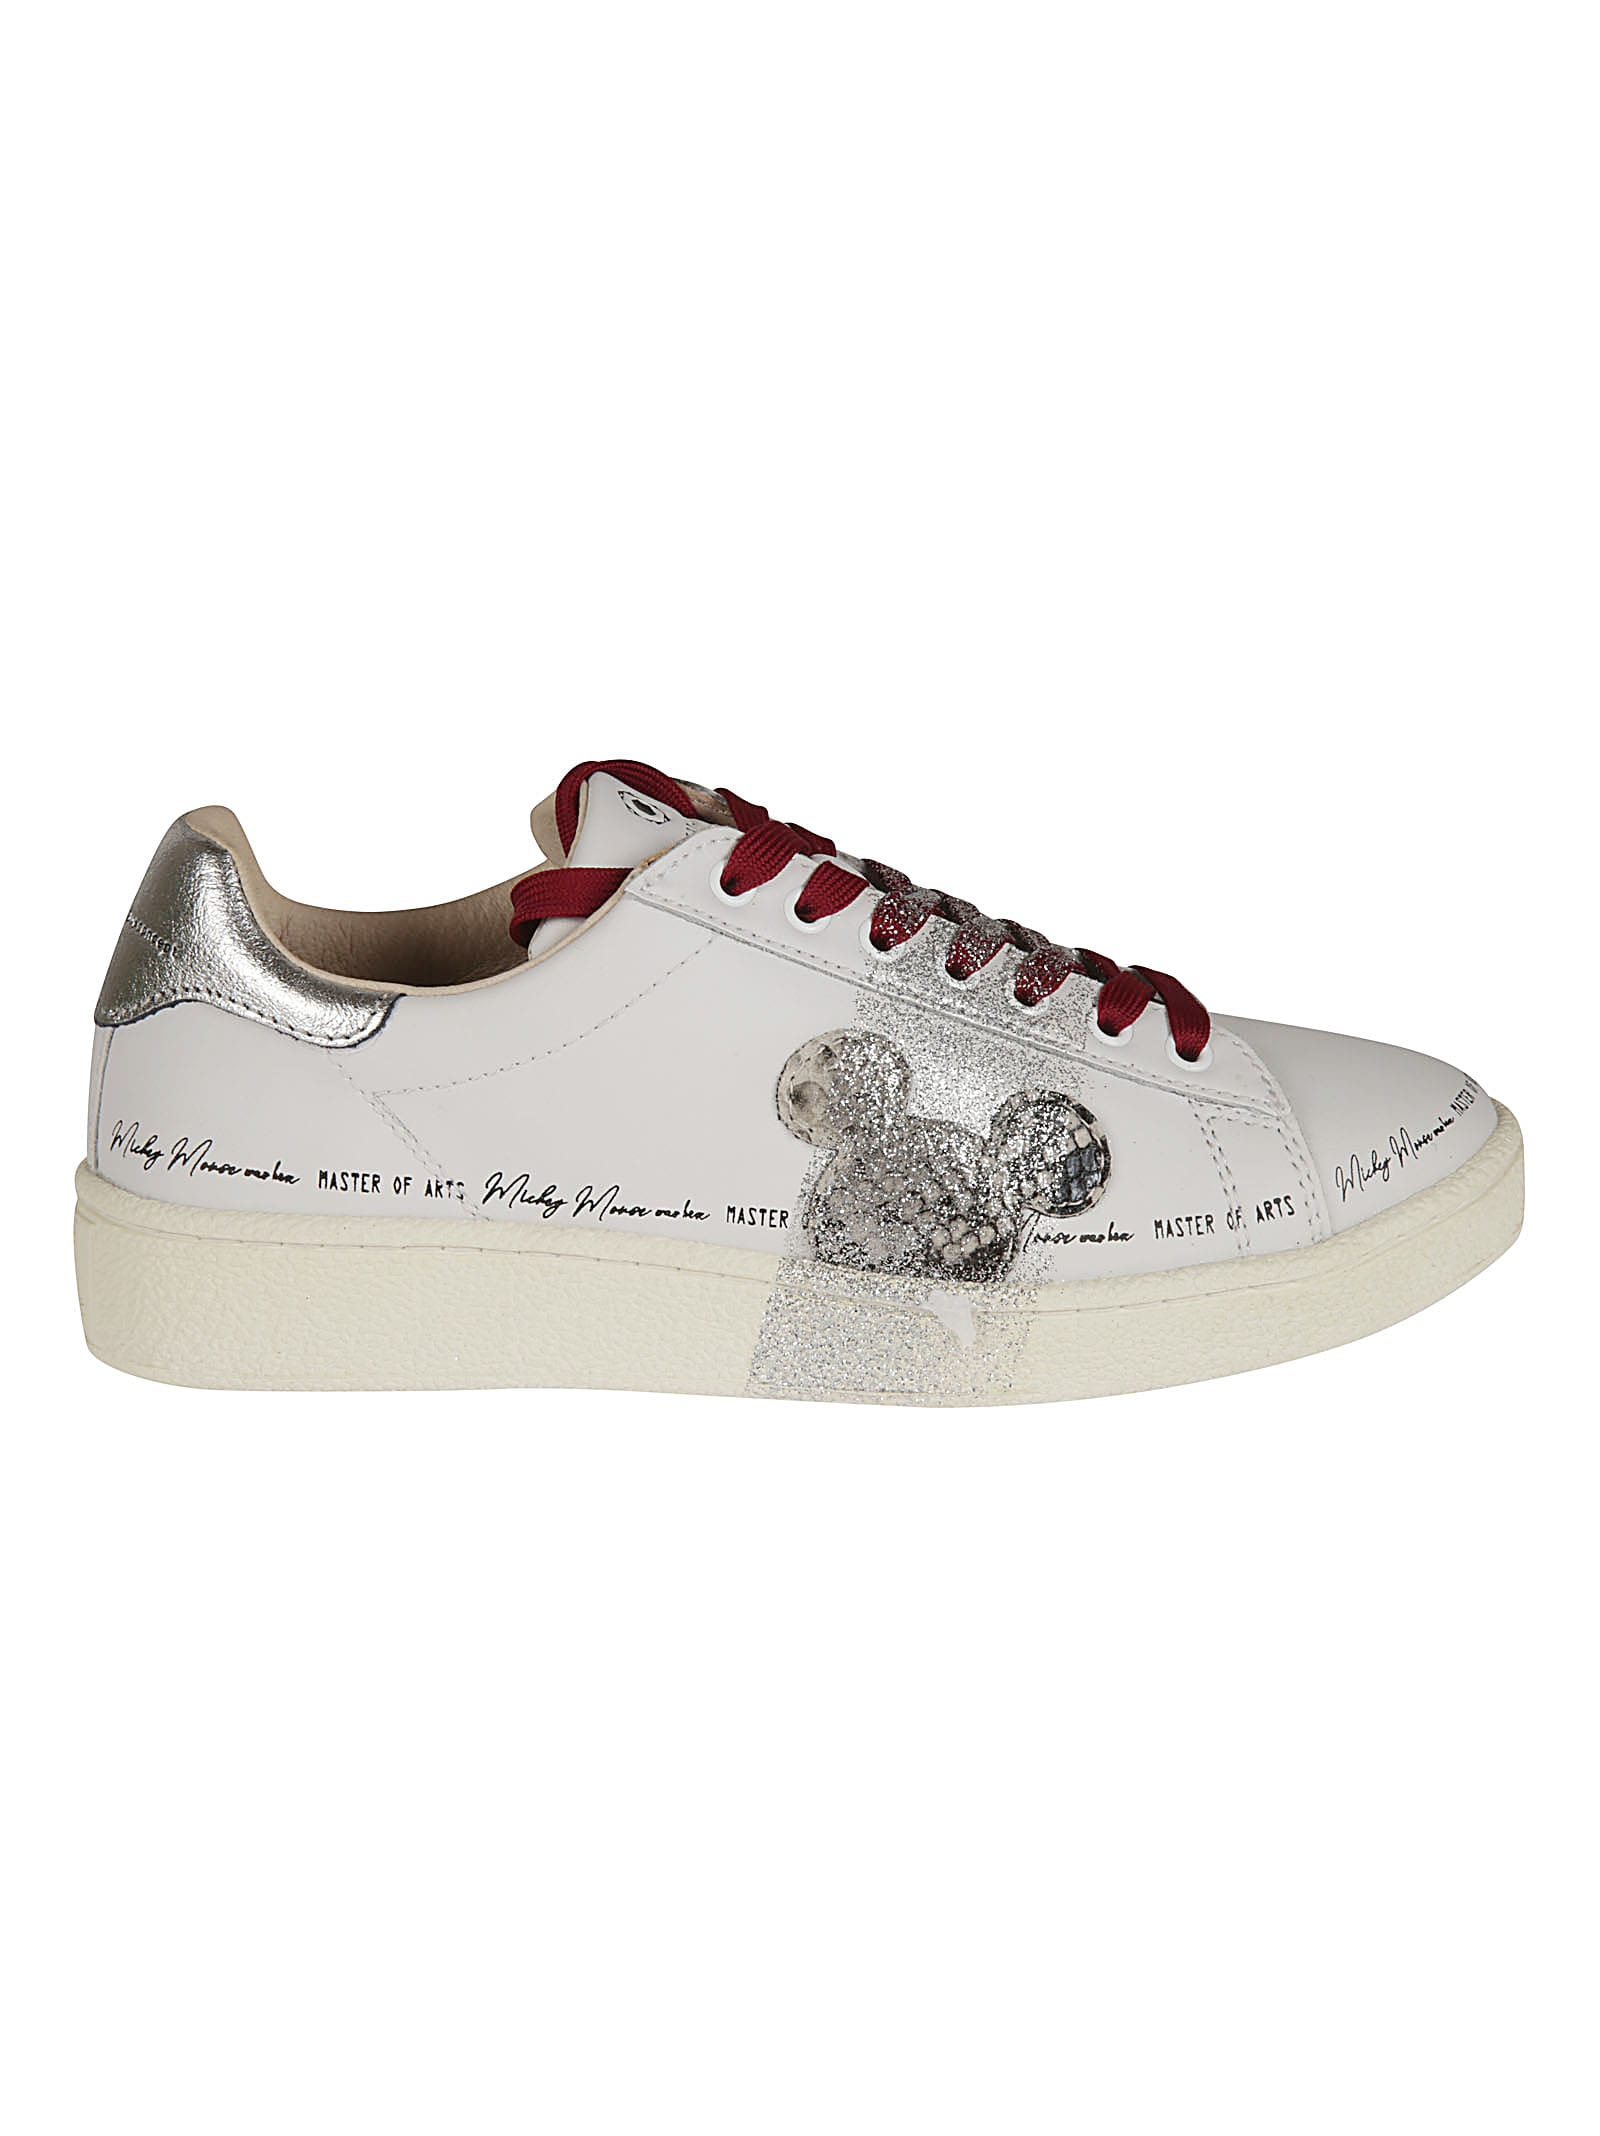 Moa Master Of Arts SNAKE MICKEY MOUSE GRAND MASTER SNEAKERS